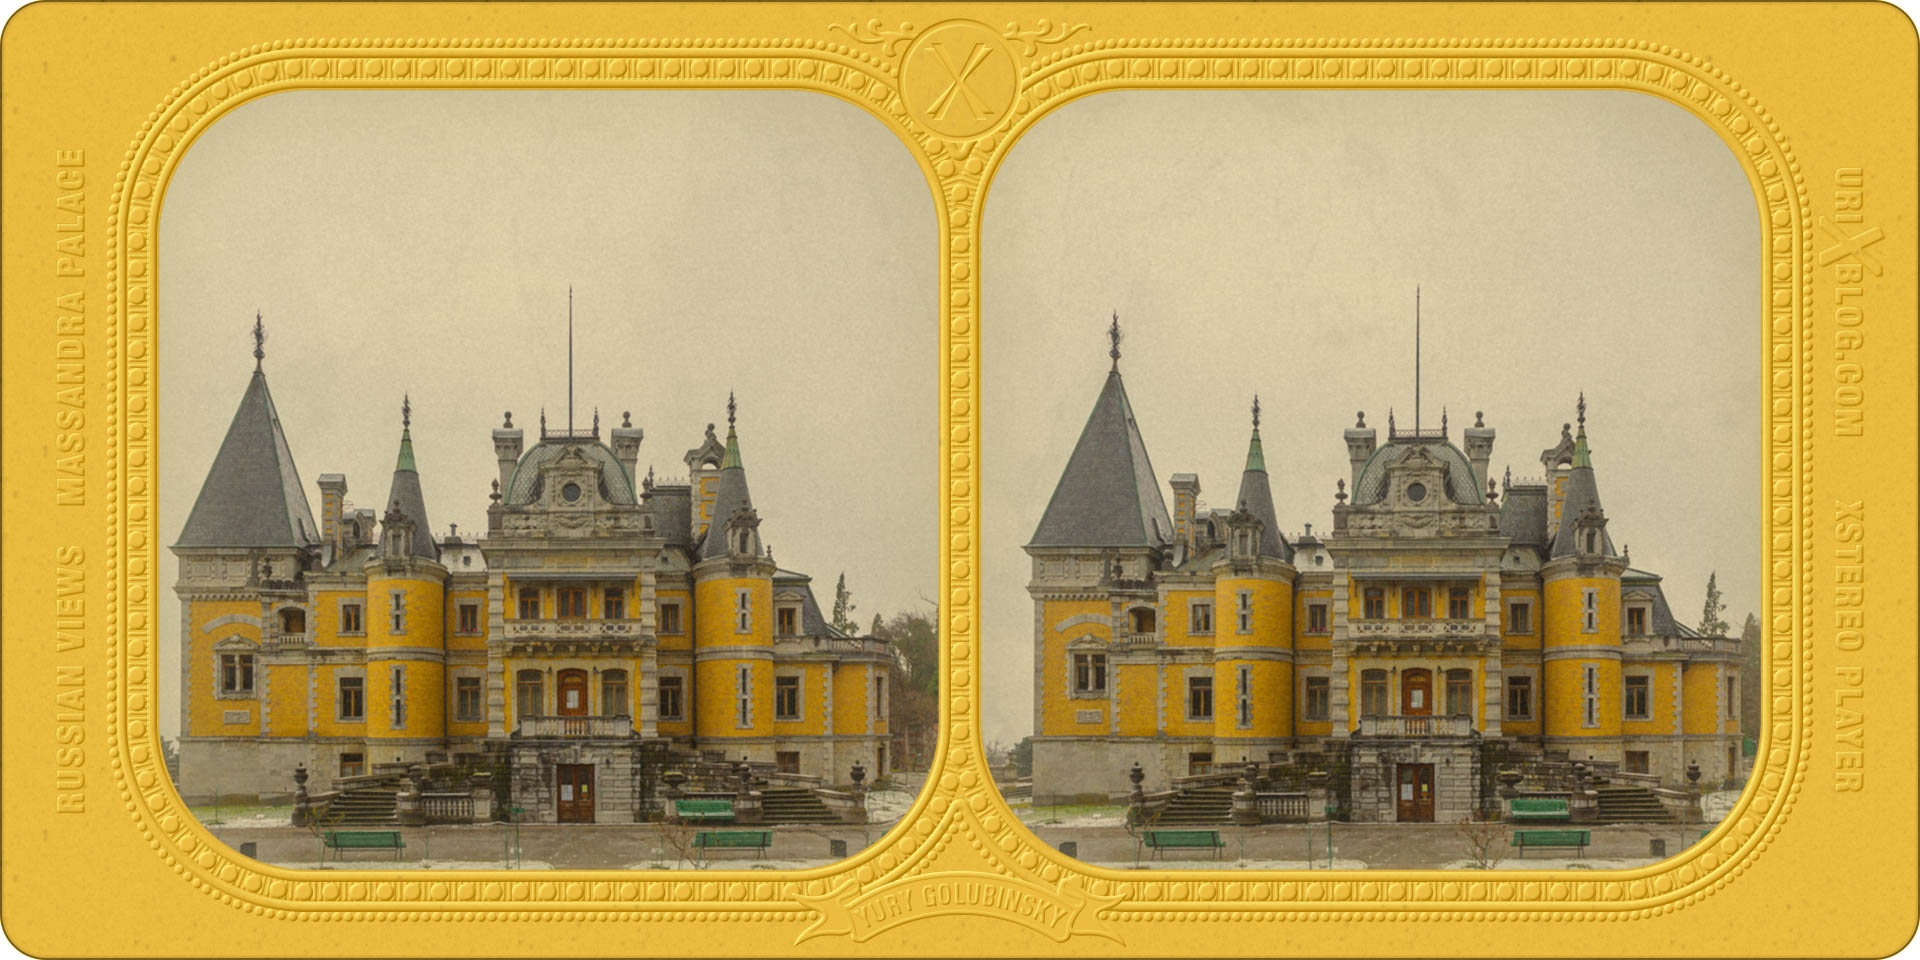 3d Stereoscopic Photos From All Over The World Urixblog Com Massandra Palace In Crimea French Tissue Stylized Stereocard